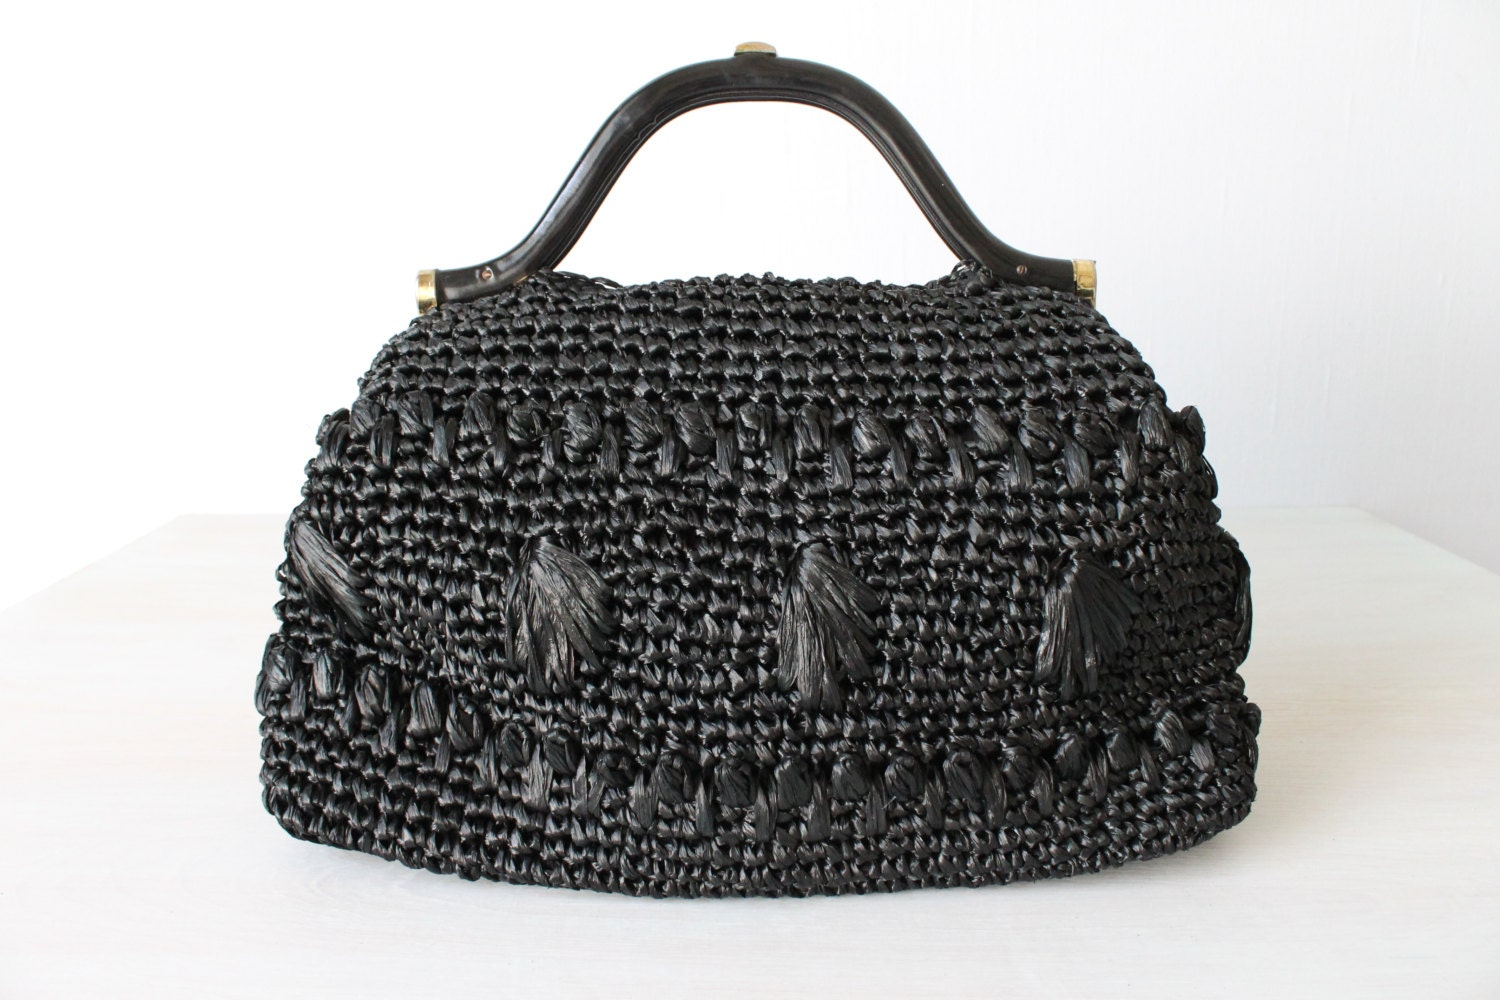 Gallery bottega veneta black woven leather large intrecciato bag rt 3 for ermanno scervinno black woven handbag with silver handle and leather fringes reusable non woven tote bags black ermanno scervinno black woven handbag with silver handle and leather fringes bottega veneta black woven leather large intrecciato bag rt 3 for.